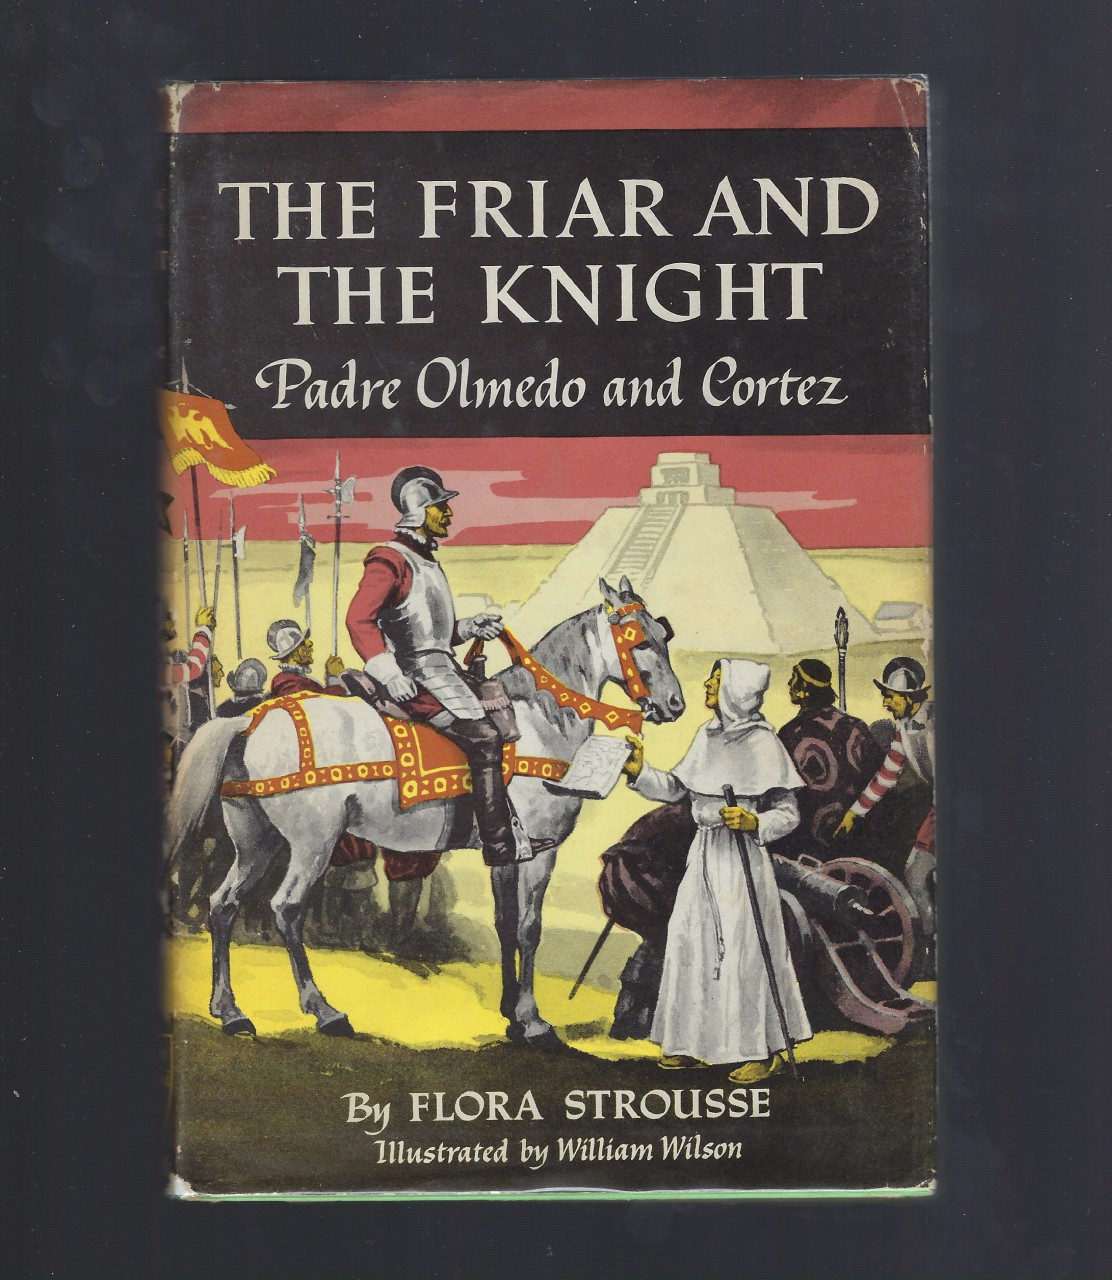 The Friar and the Knight Padre Olmedo and Cortez (American Background Books) (Catholic), Flora Strousse; Illustrator-William Wilson